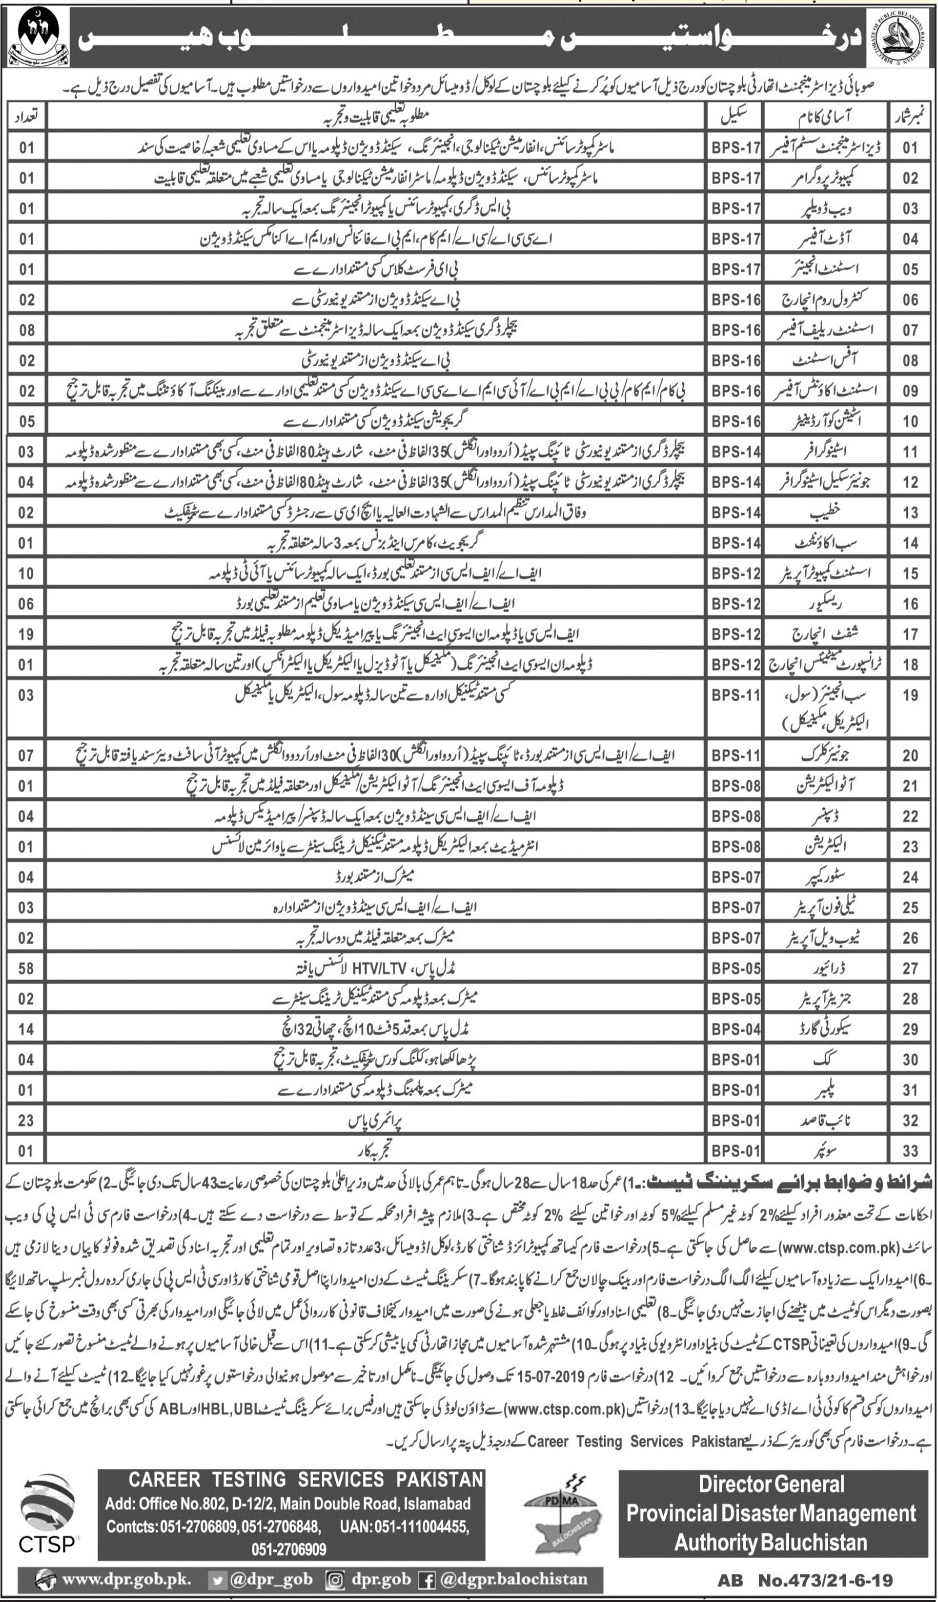 Provincial Disaster Management Authority Baluchistan PDMA Jobs CTSP Test Roll No Slip